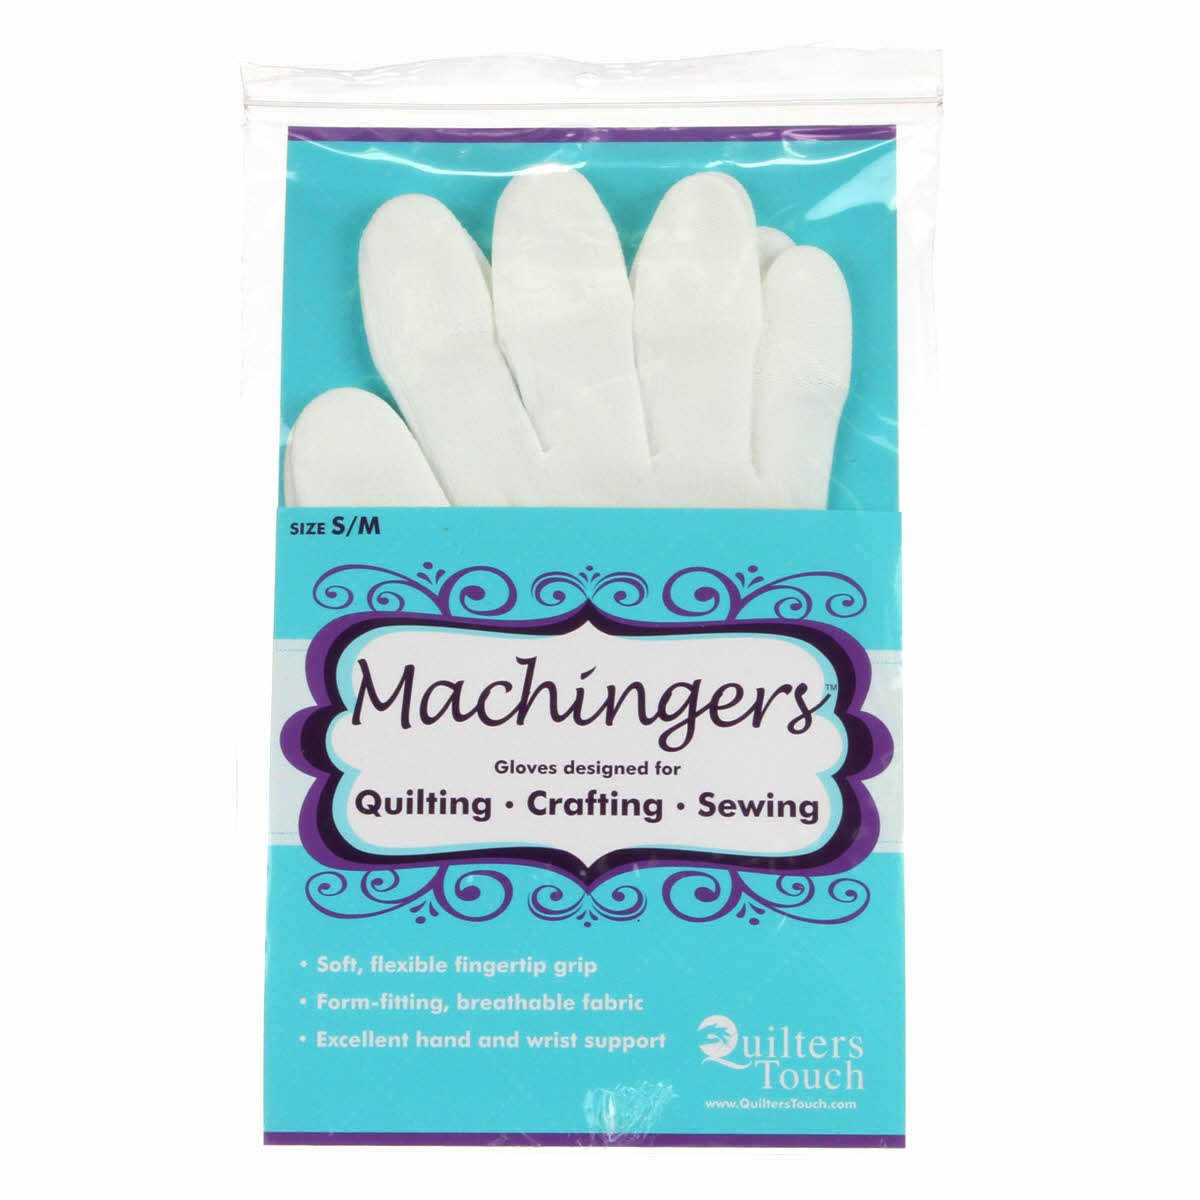 Amazon.com: Machingers Quilting Gloves for Free-Motion Sewing : quilting gloves - Adamdwight.com